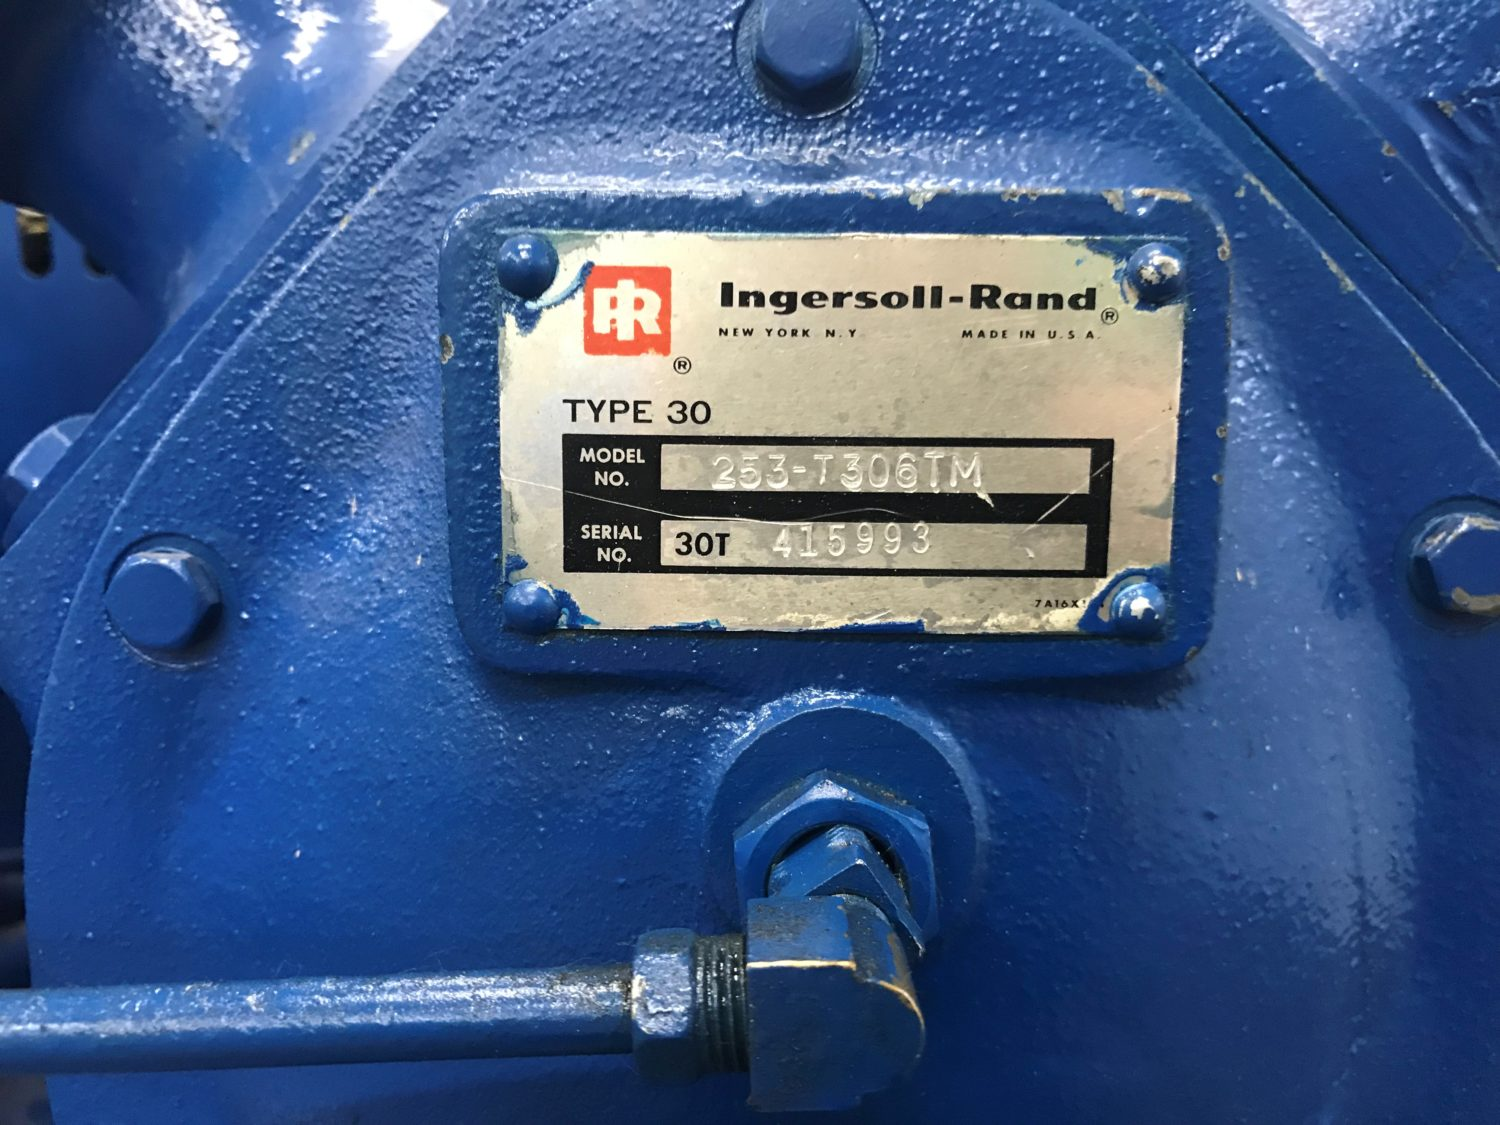 Where Are Ingersoll Rand Compressors Made